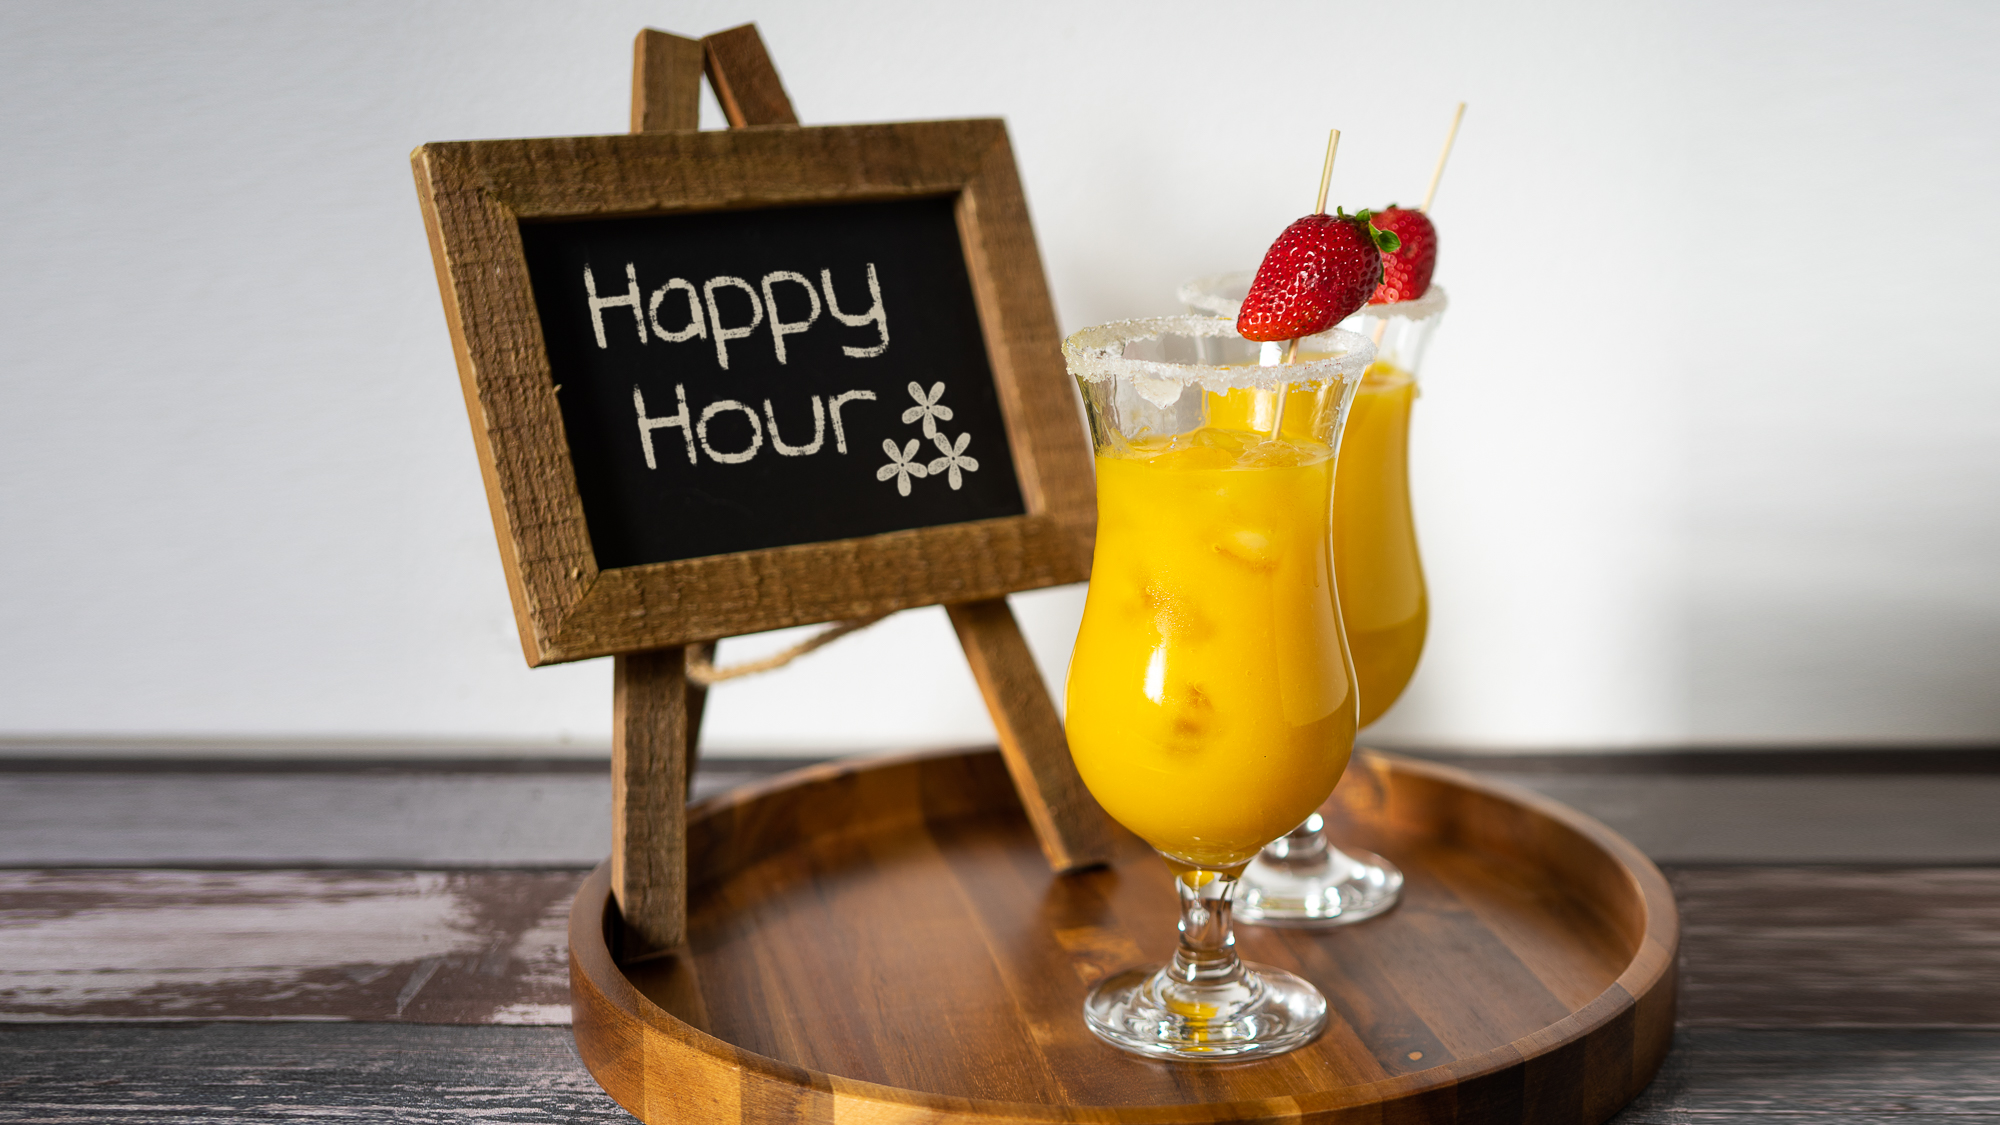 Are you ready for Happy Hour?